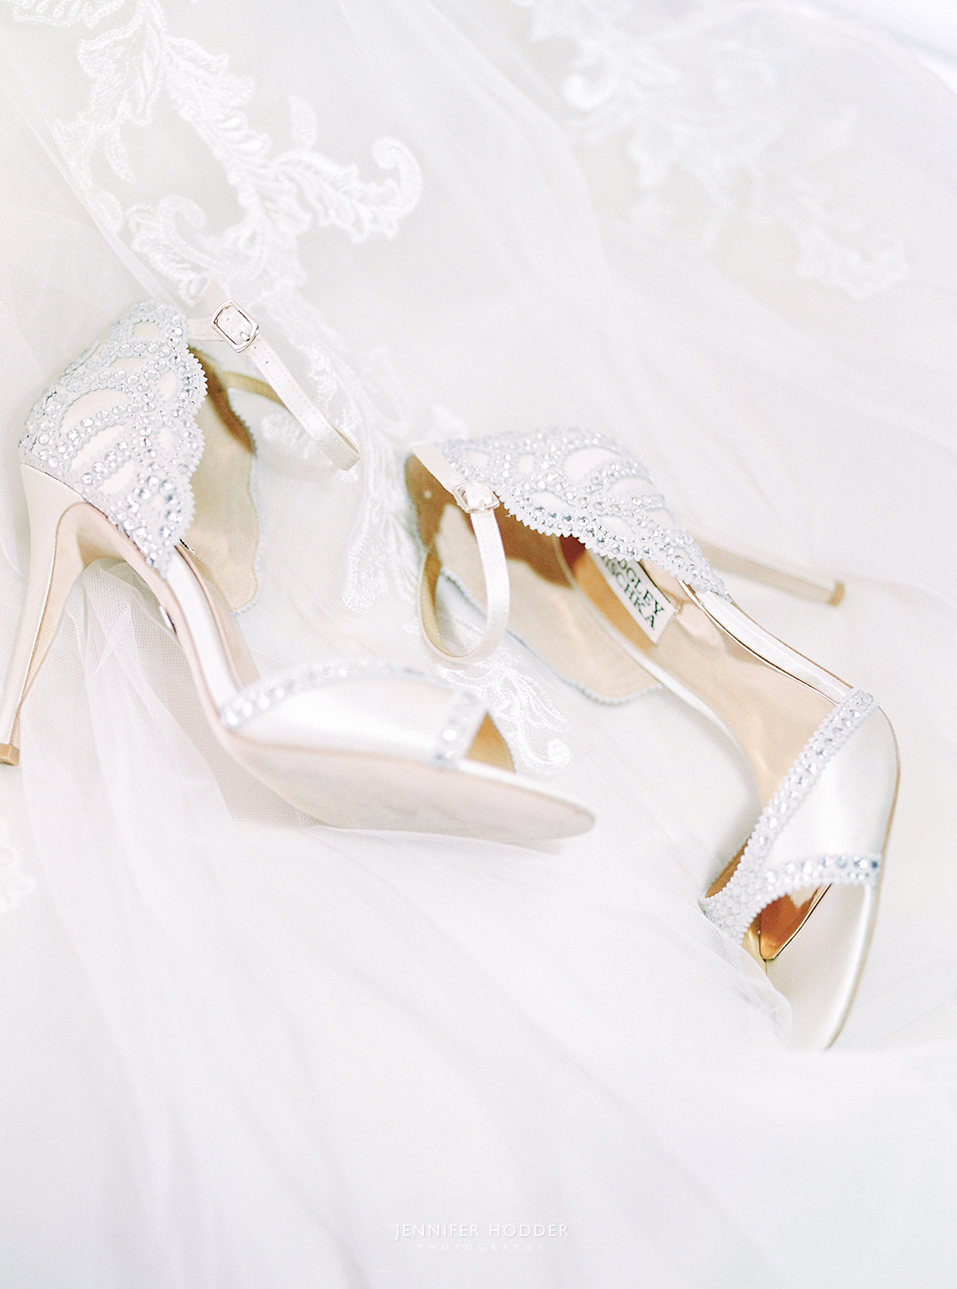 Badgley Mischka peep toe wedding shoe